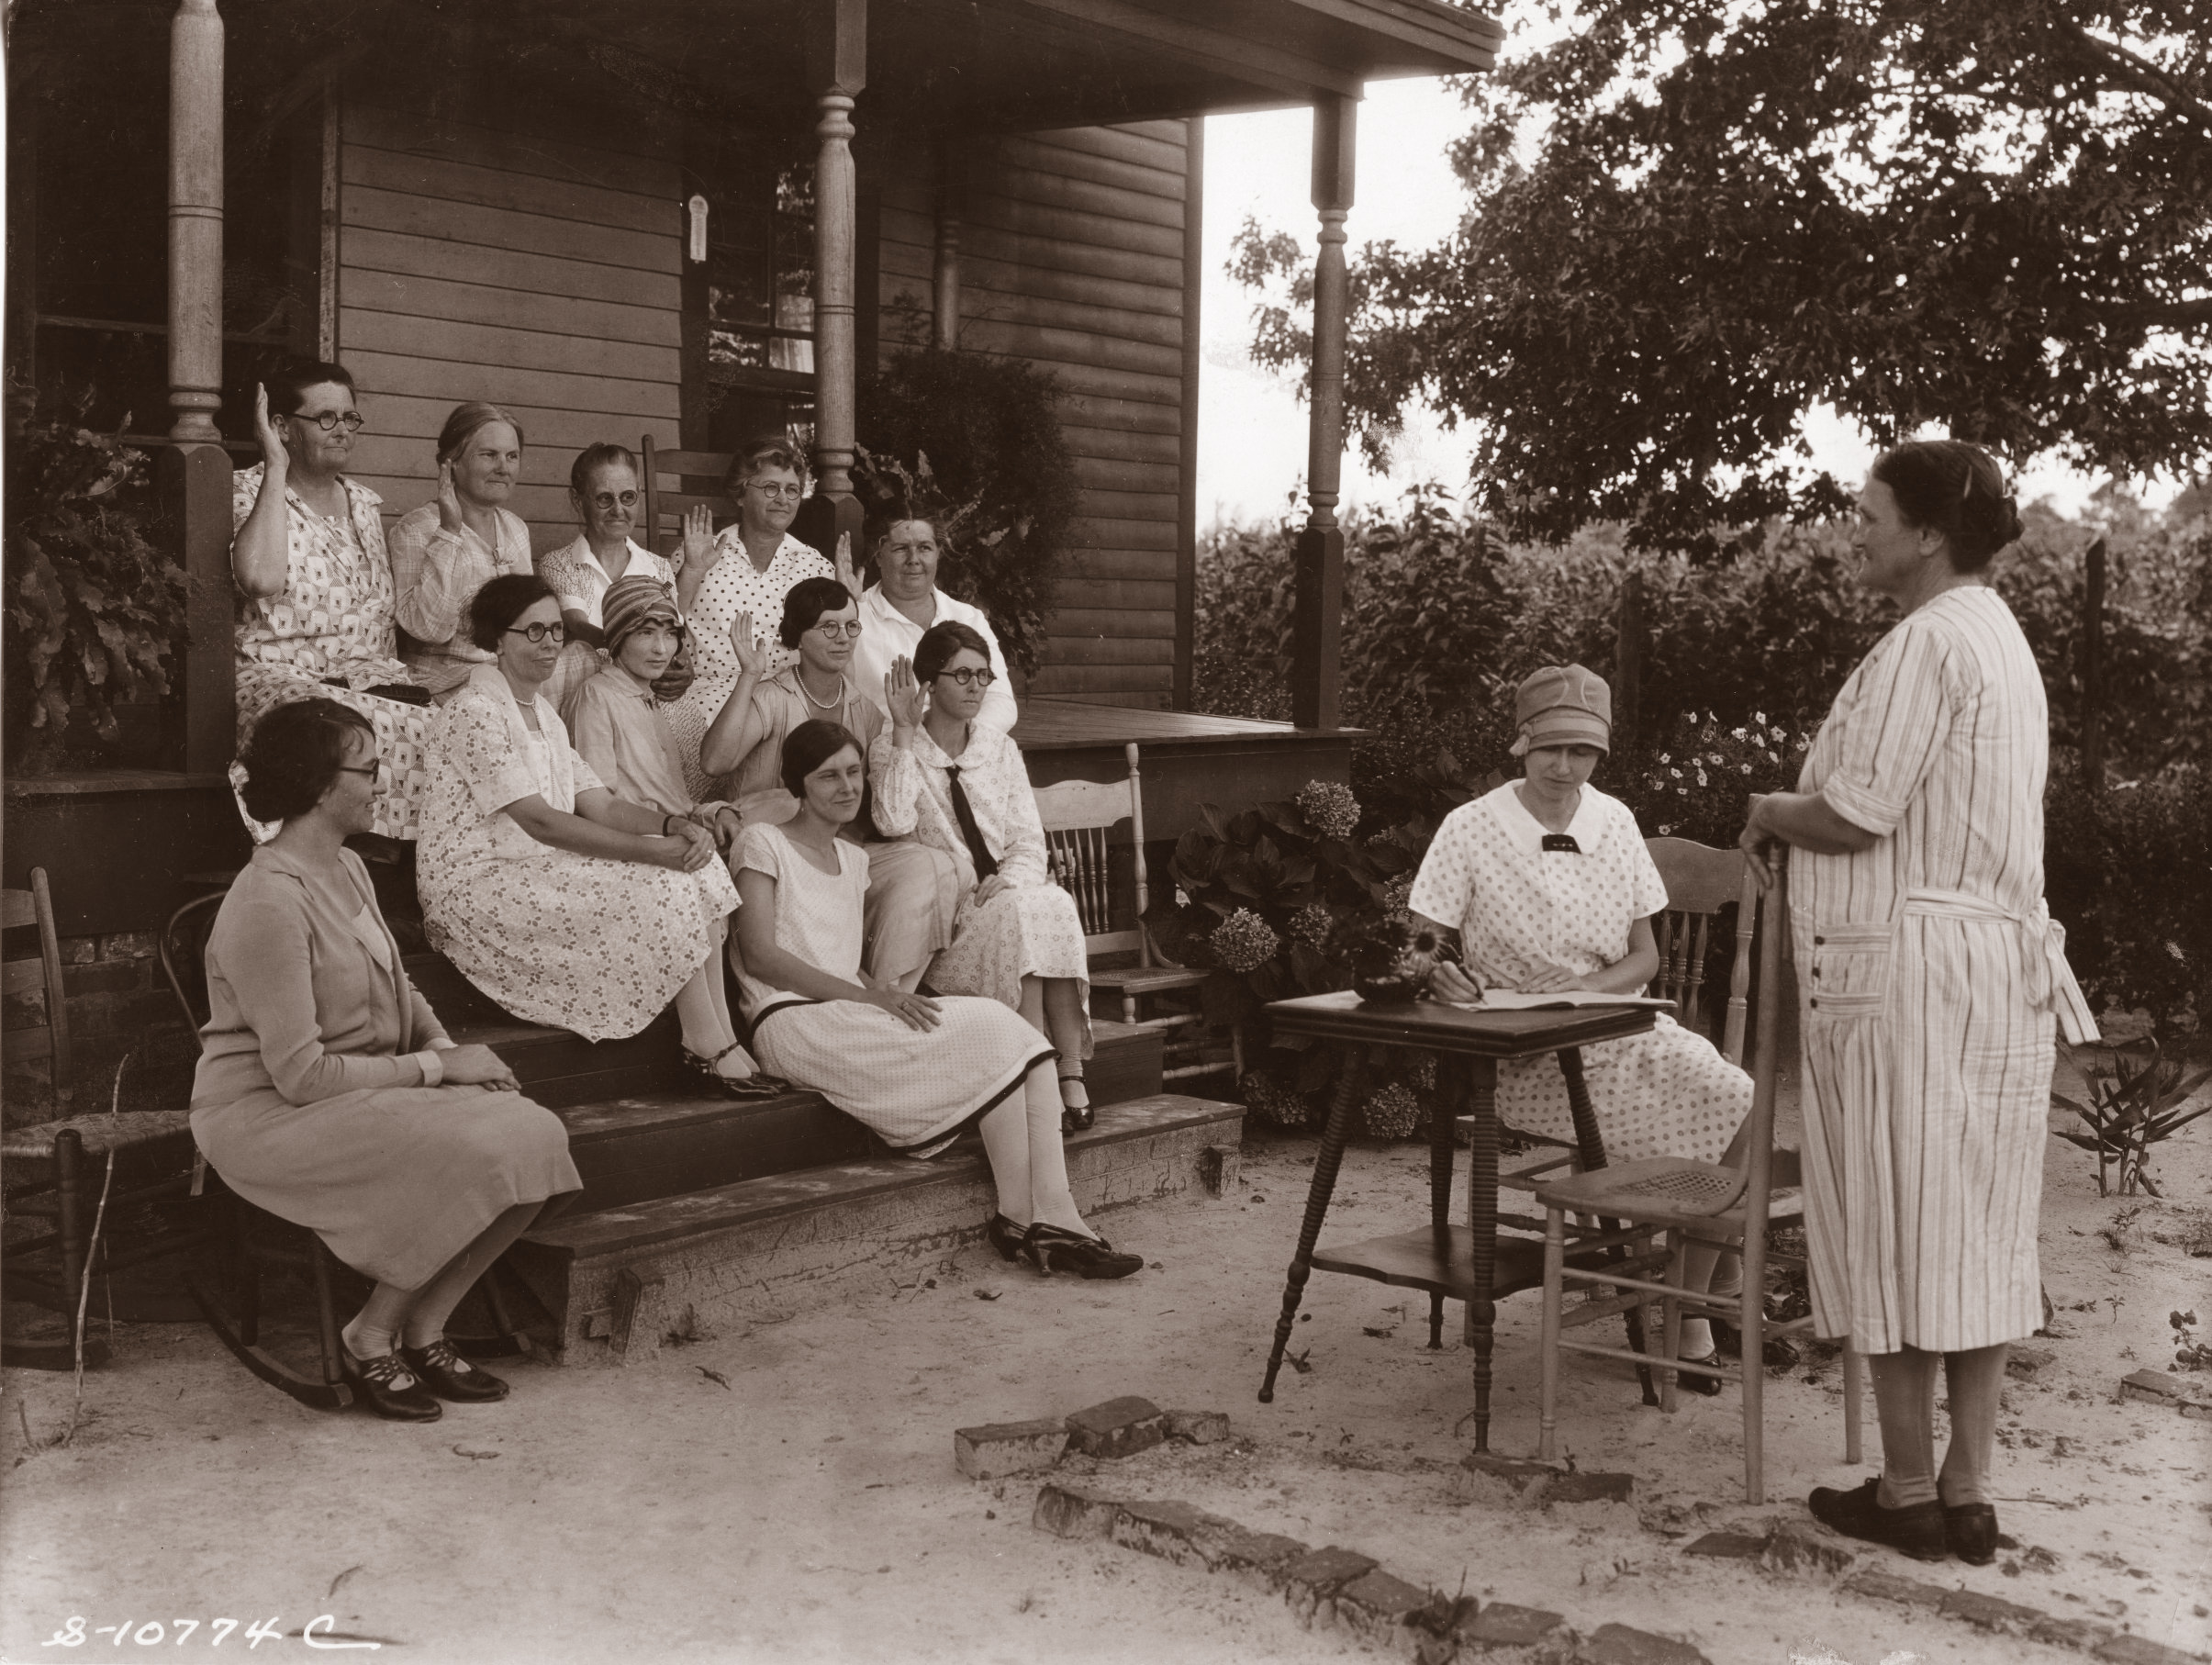 Mrs. Joe Kelly presides at the Watha Home Demonstration Club meeting. The picture, set in rural Pender County, was probably taken between 1925 and 1930.